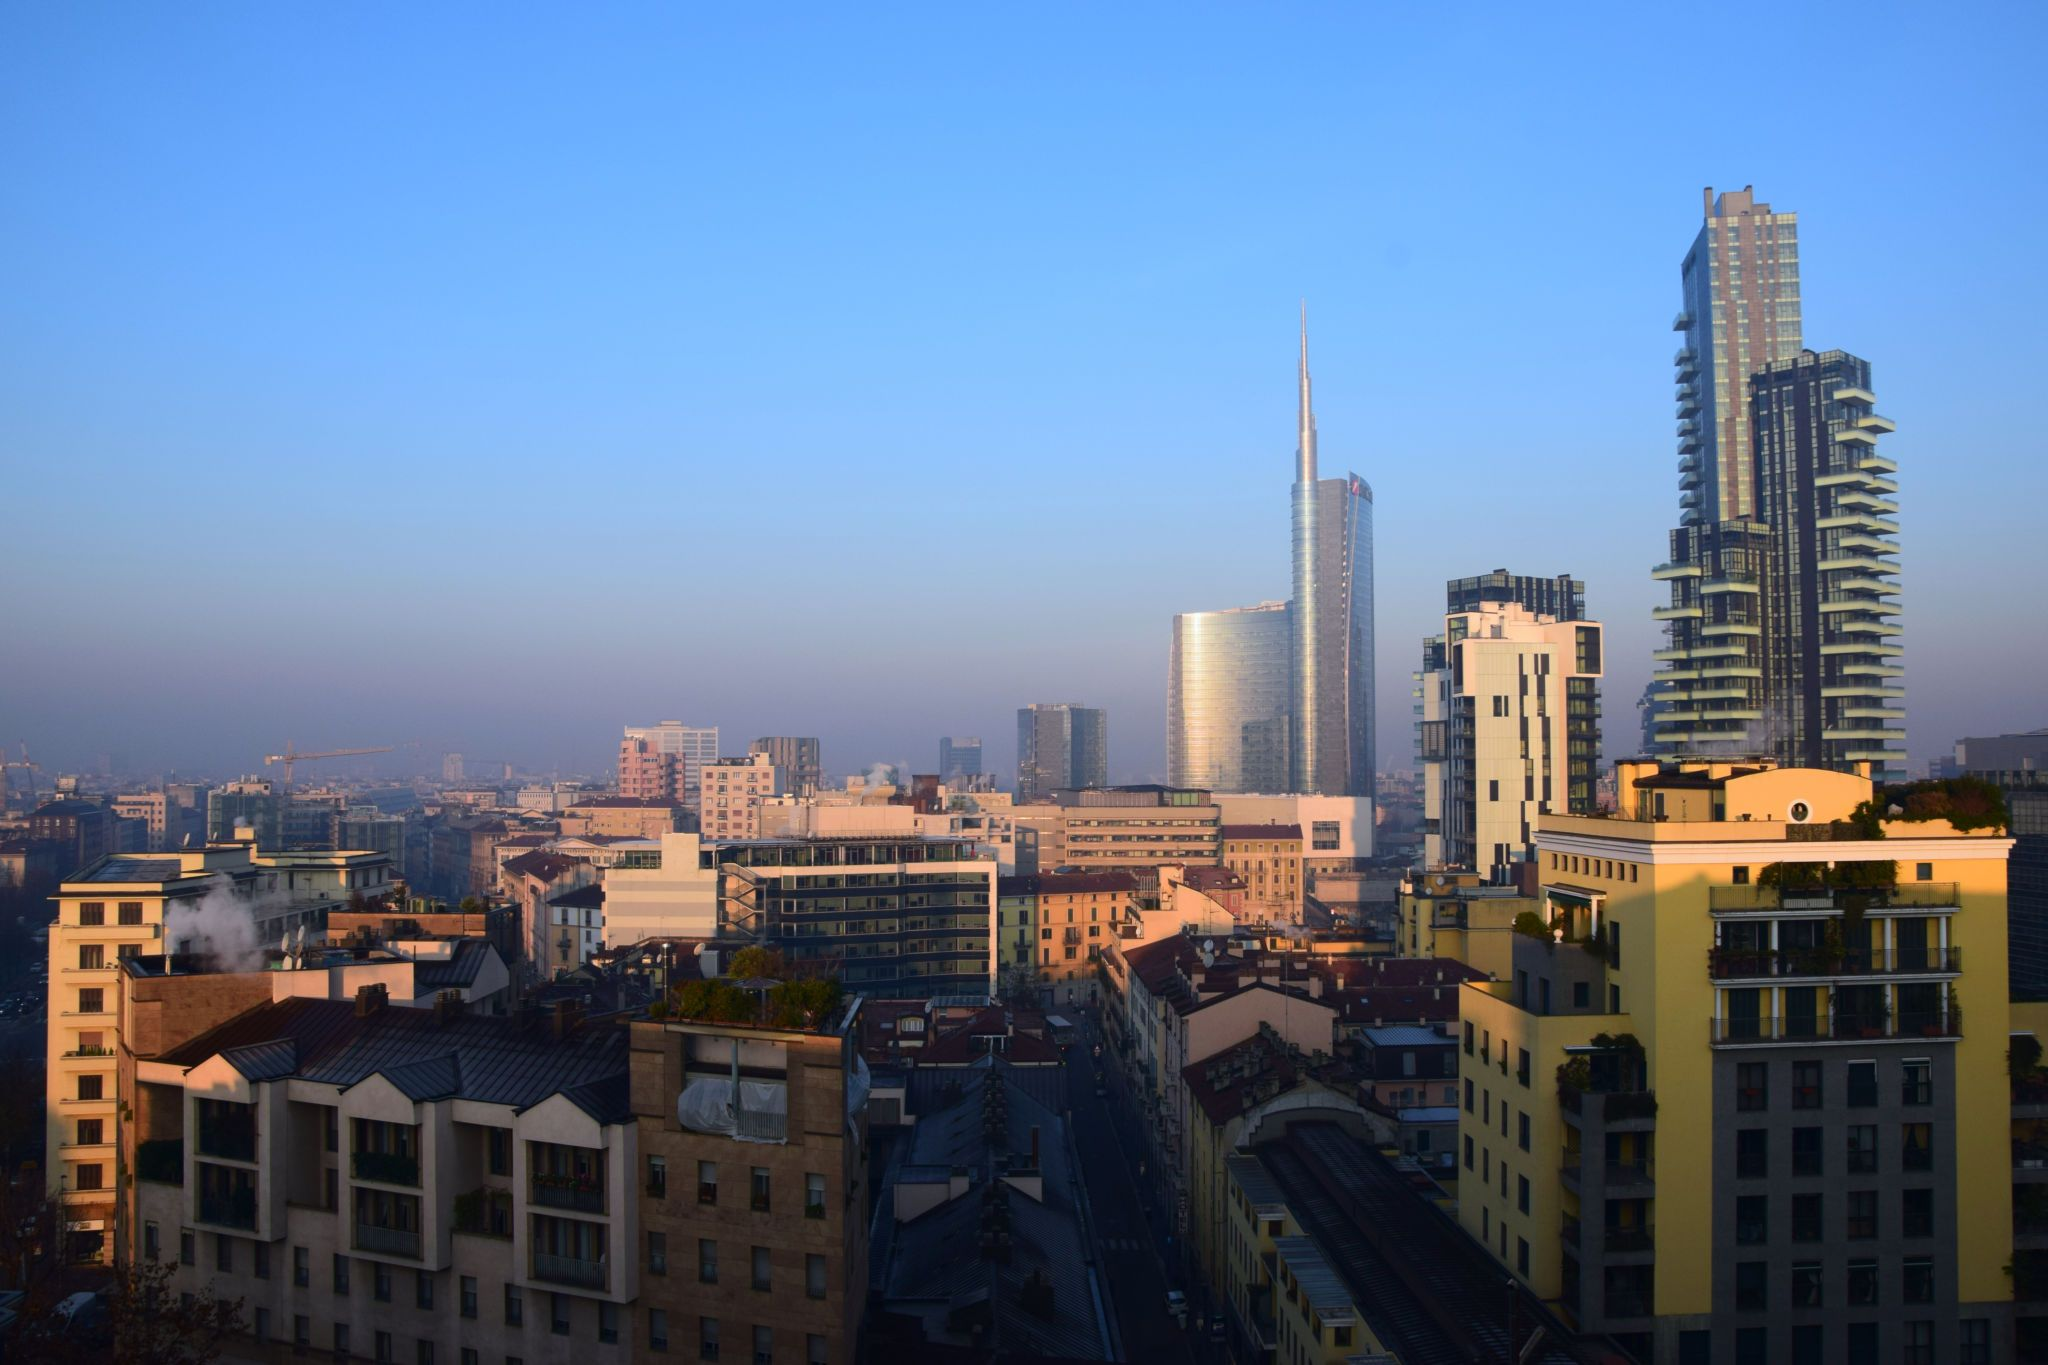 Over the roofs – Milan from above